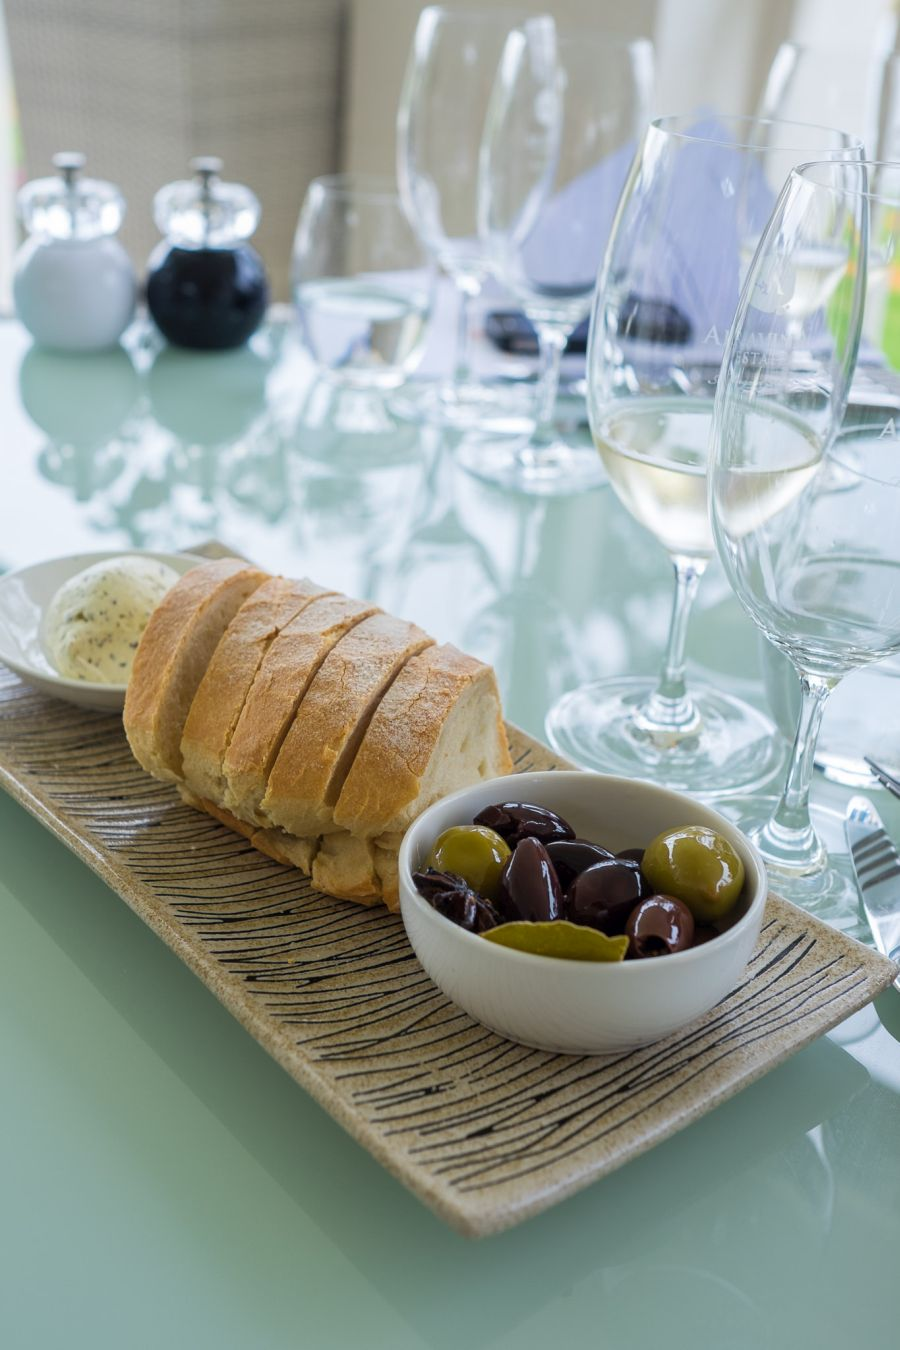 Marinated olives, freshly baked Aravina Estate bread, and whipped truffle butter